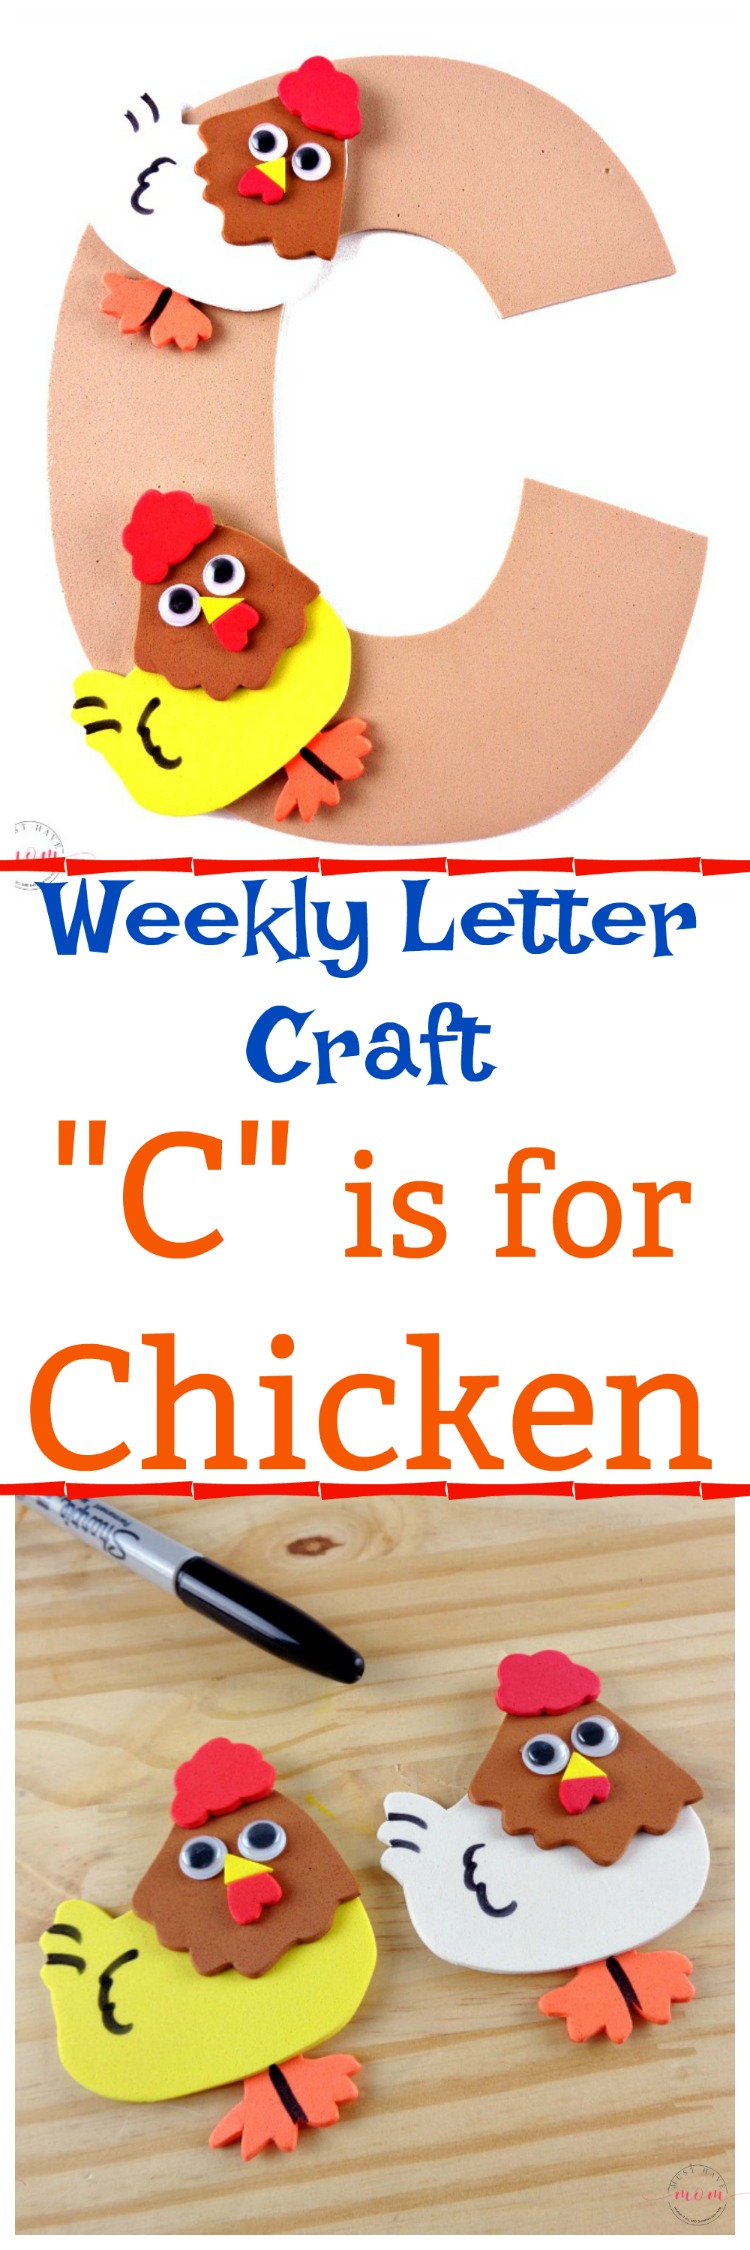 "Letter of the Week craft activity idea! Letter ""C"" is for Chicken craft DIY tutorial and free printable letter C template."